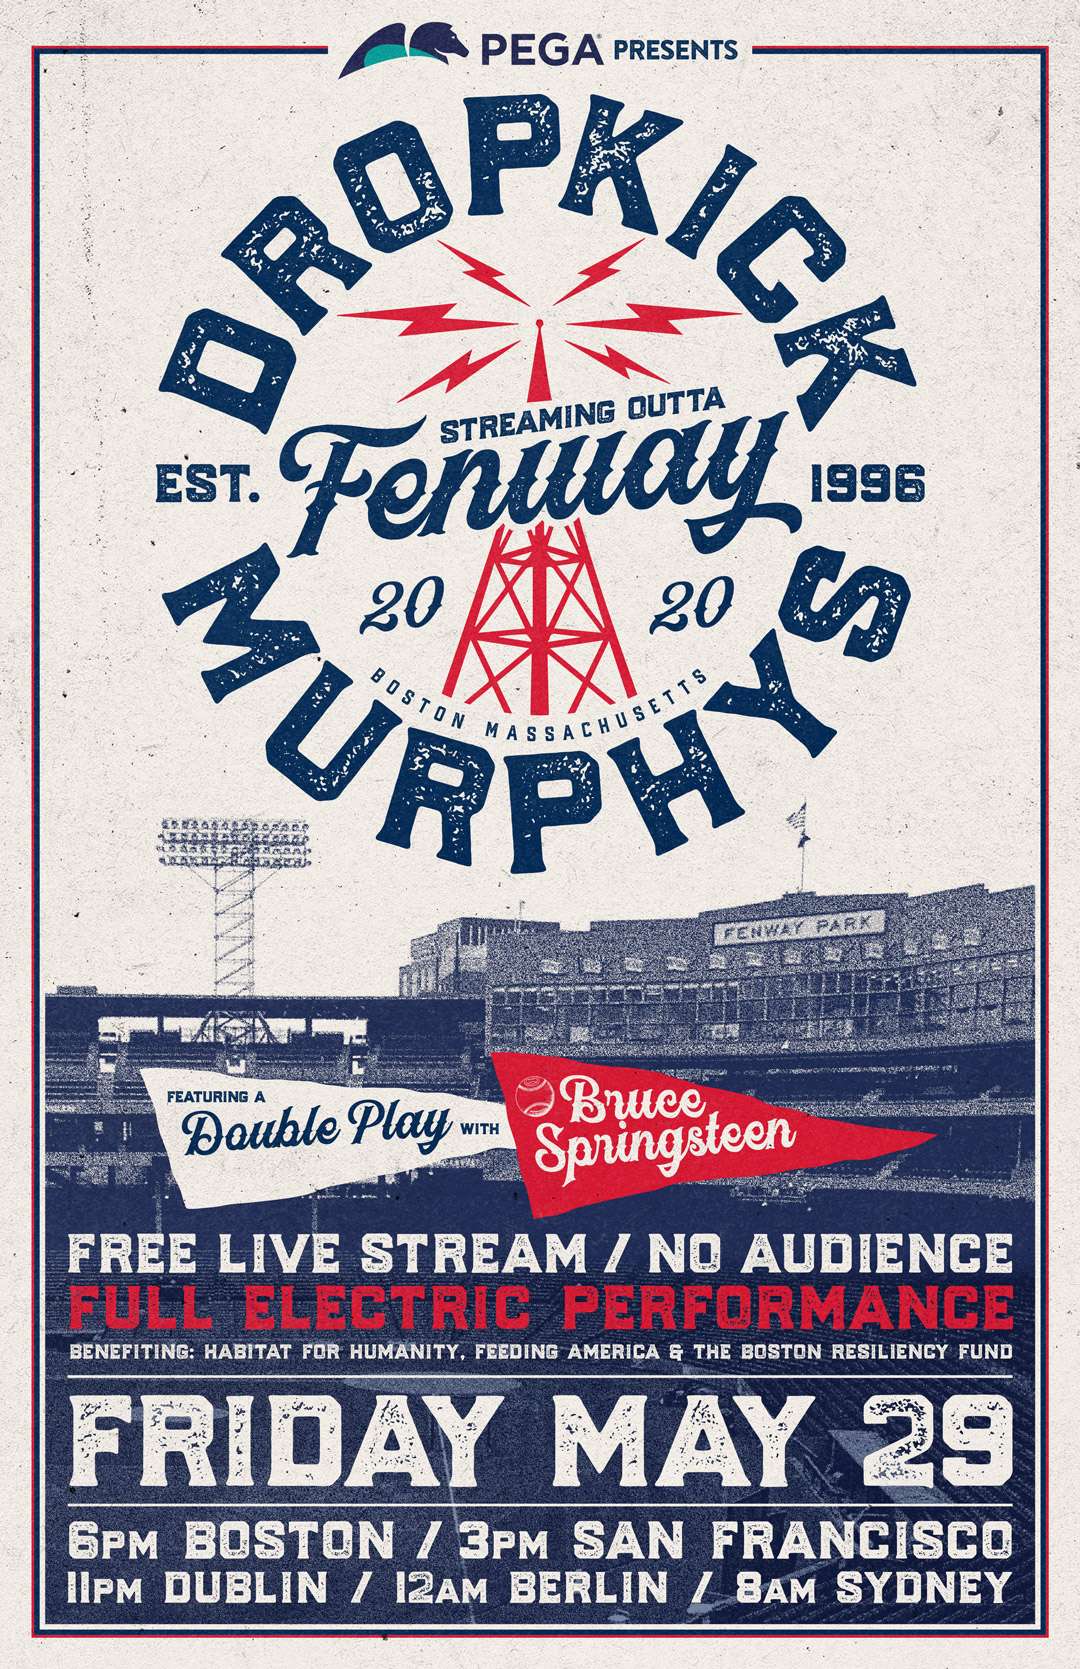 Streaming Outta Fenway - May 29  @ 6pm EST